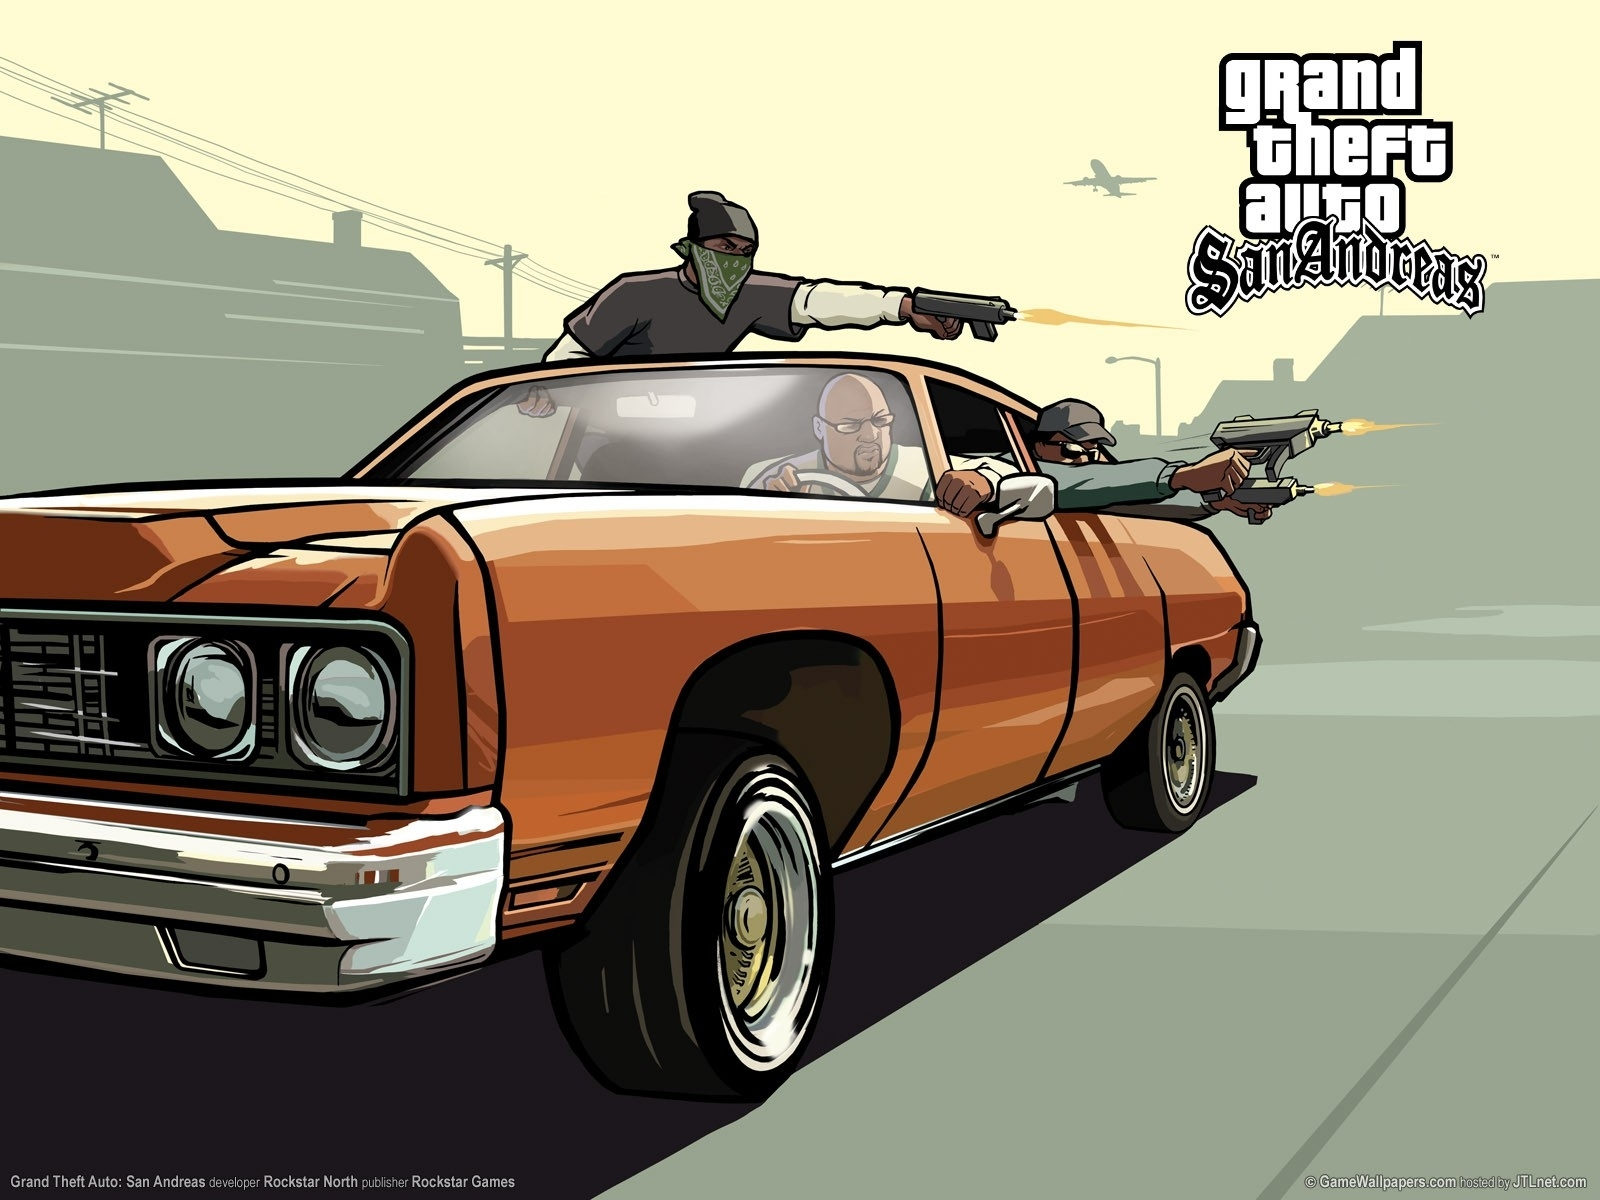 13 grand theft auto: san andreas hd wallpapers   background images